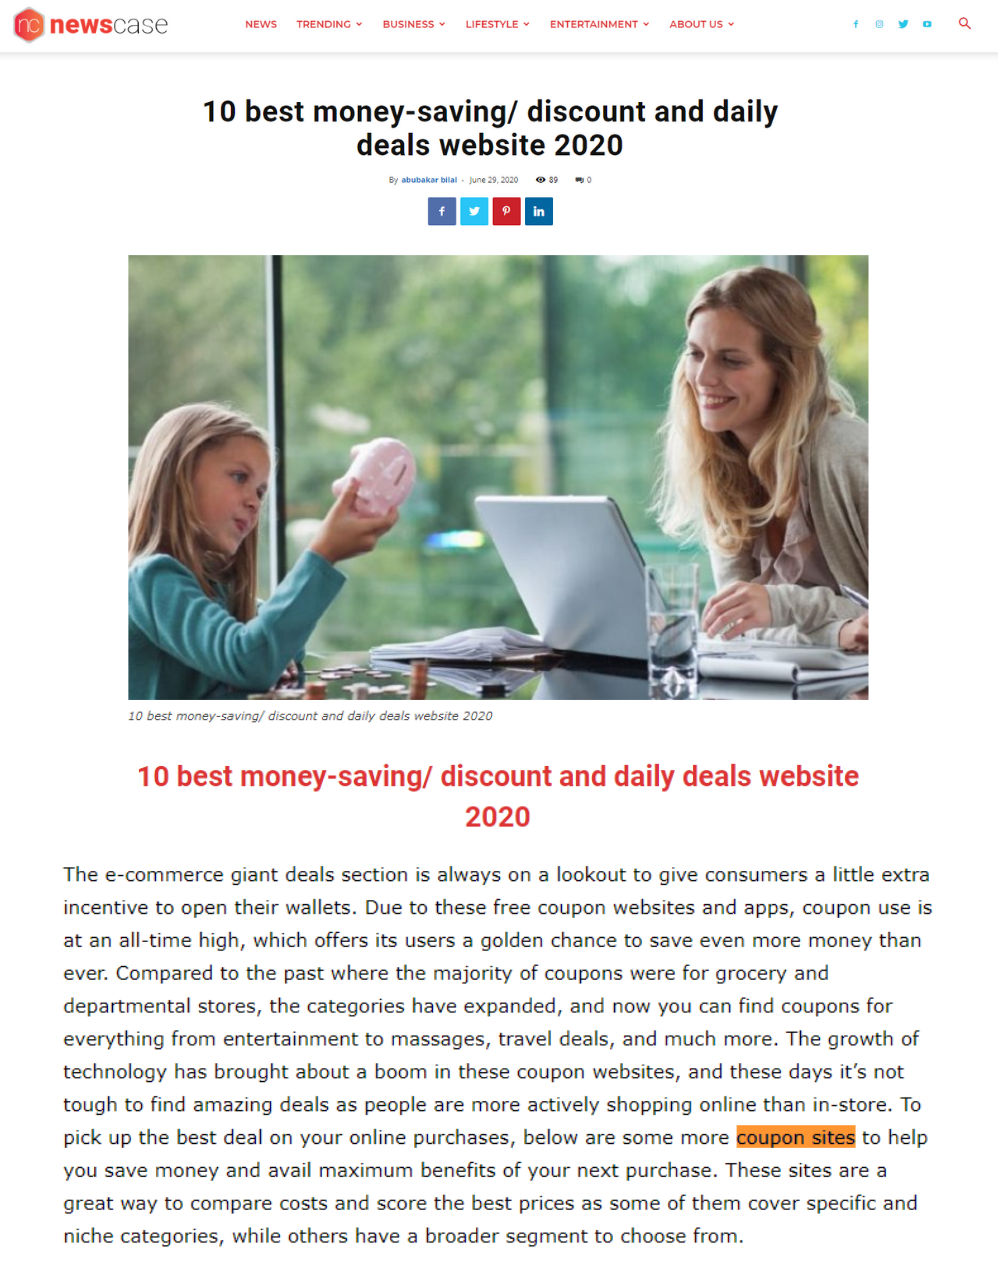 https://www.newscase.com/best-money-saving-discount-and-daily-deals-website-2020/